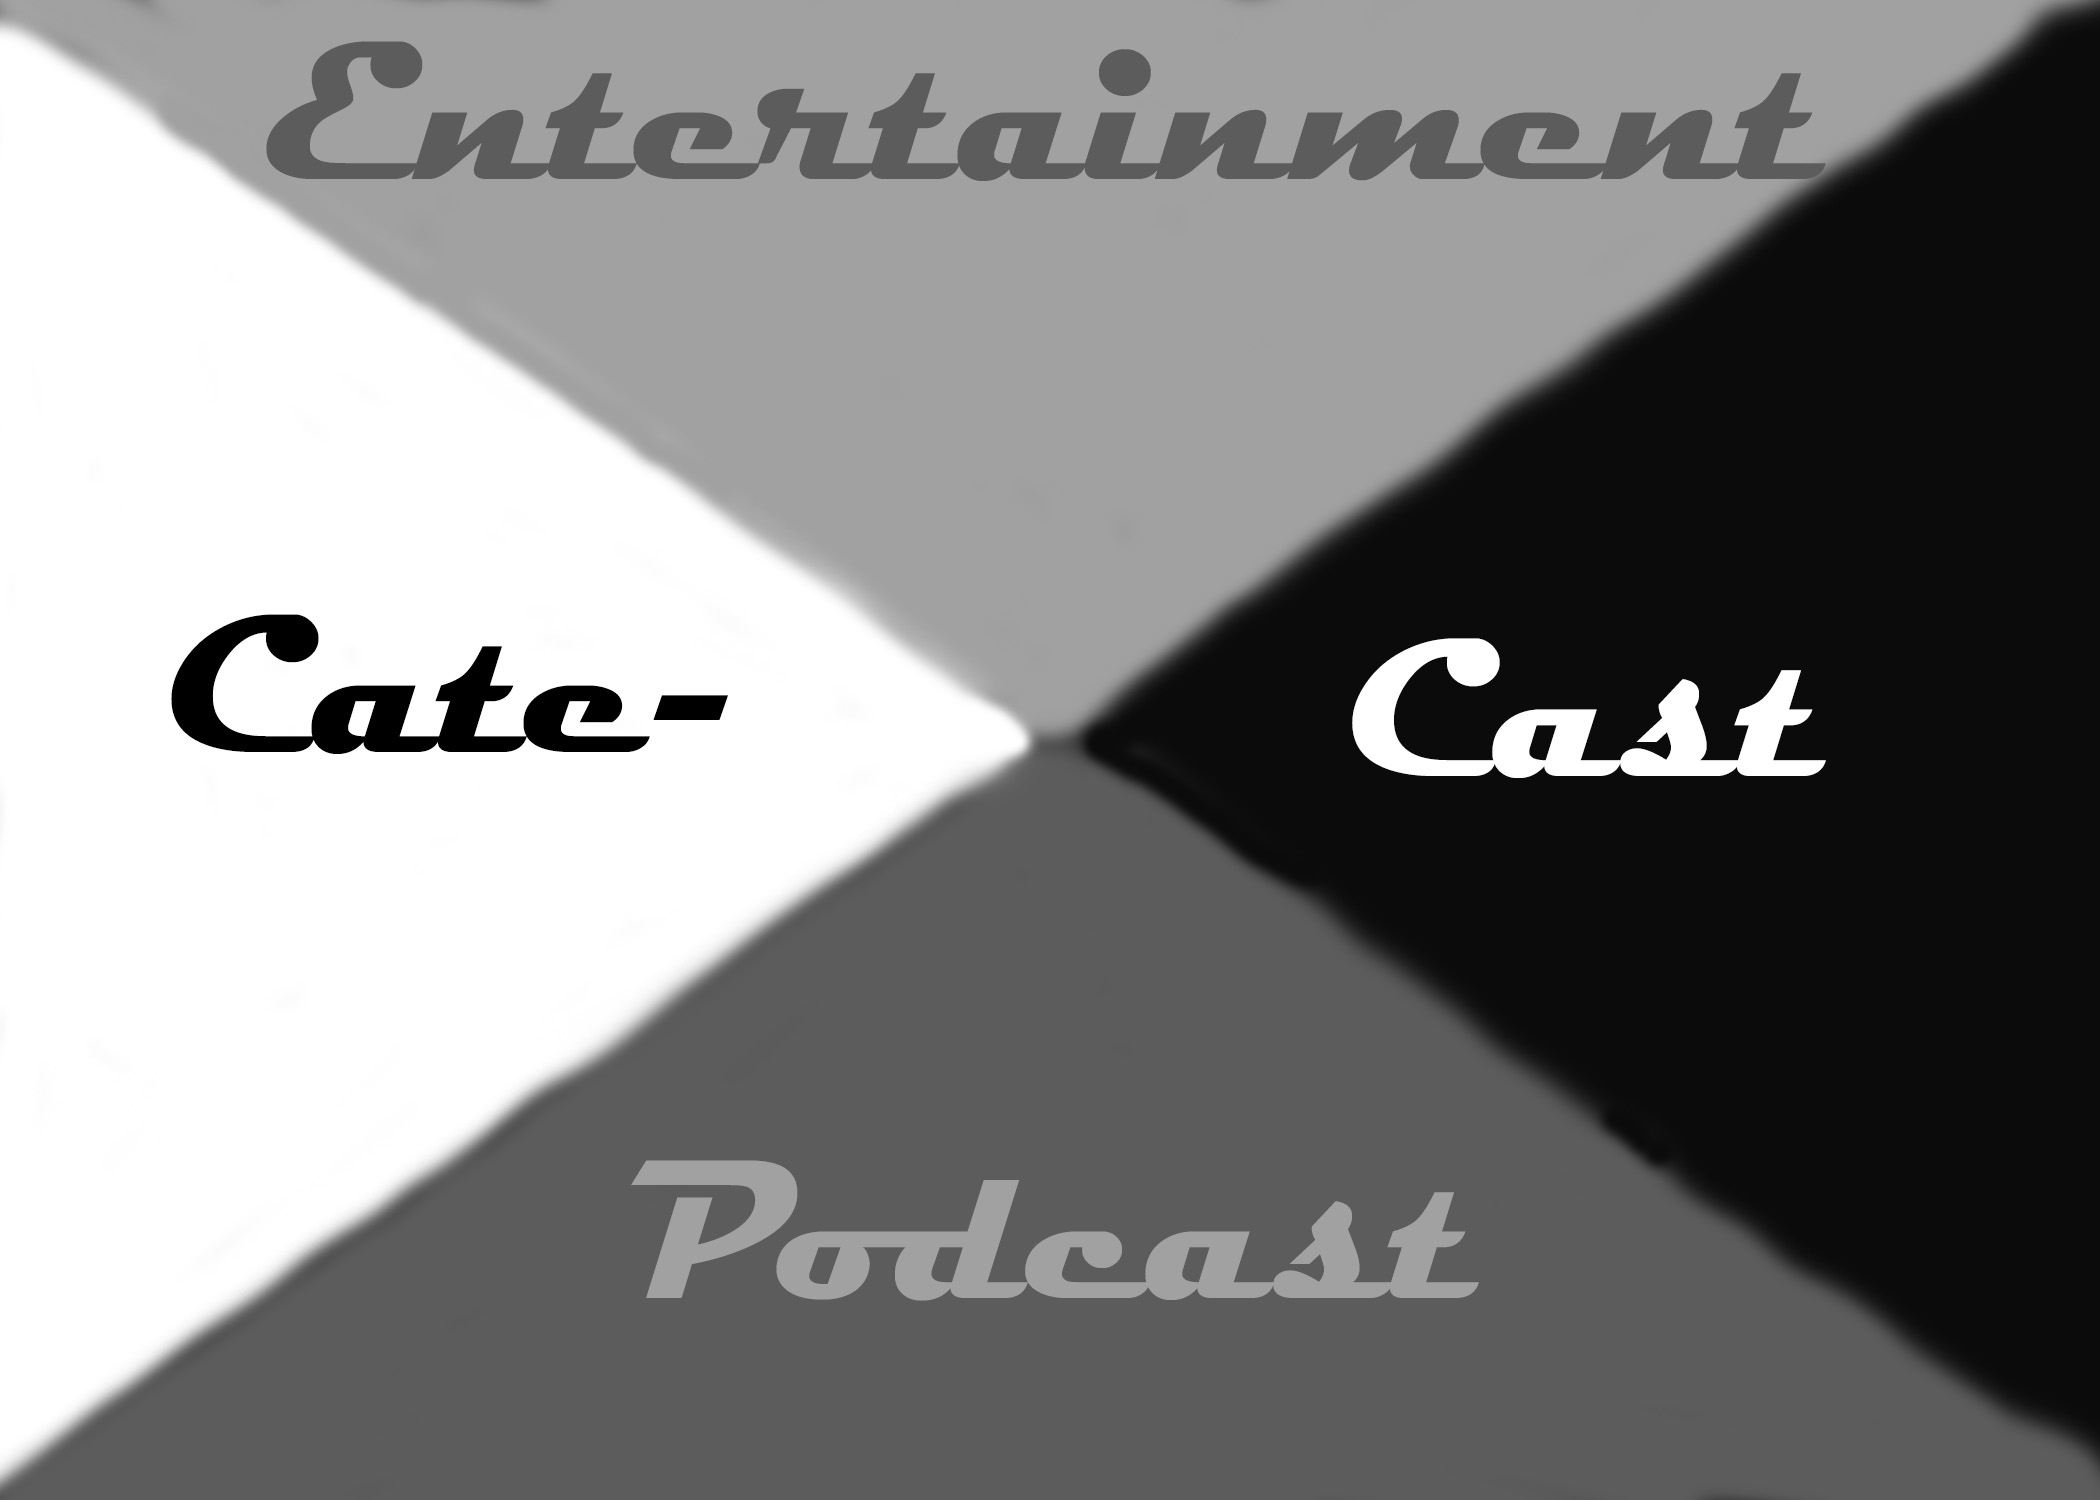 Cate-Cast Podcast